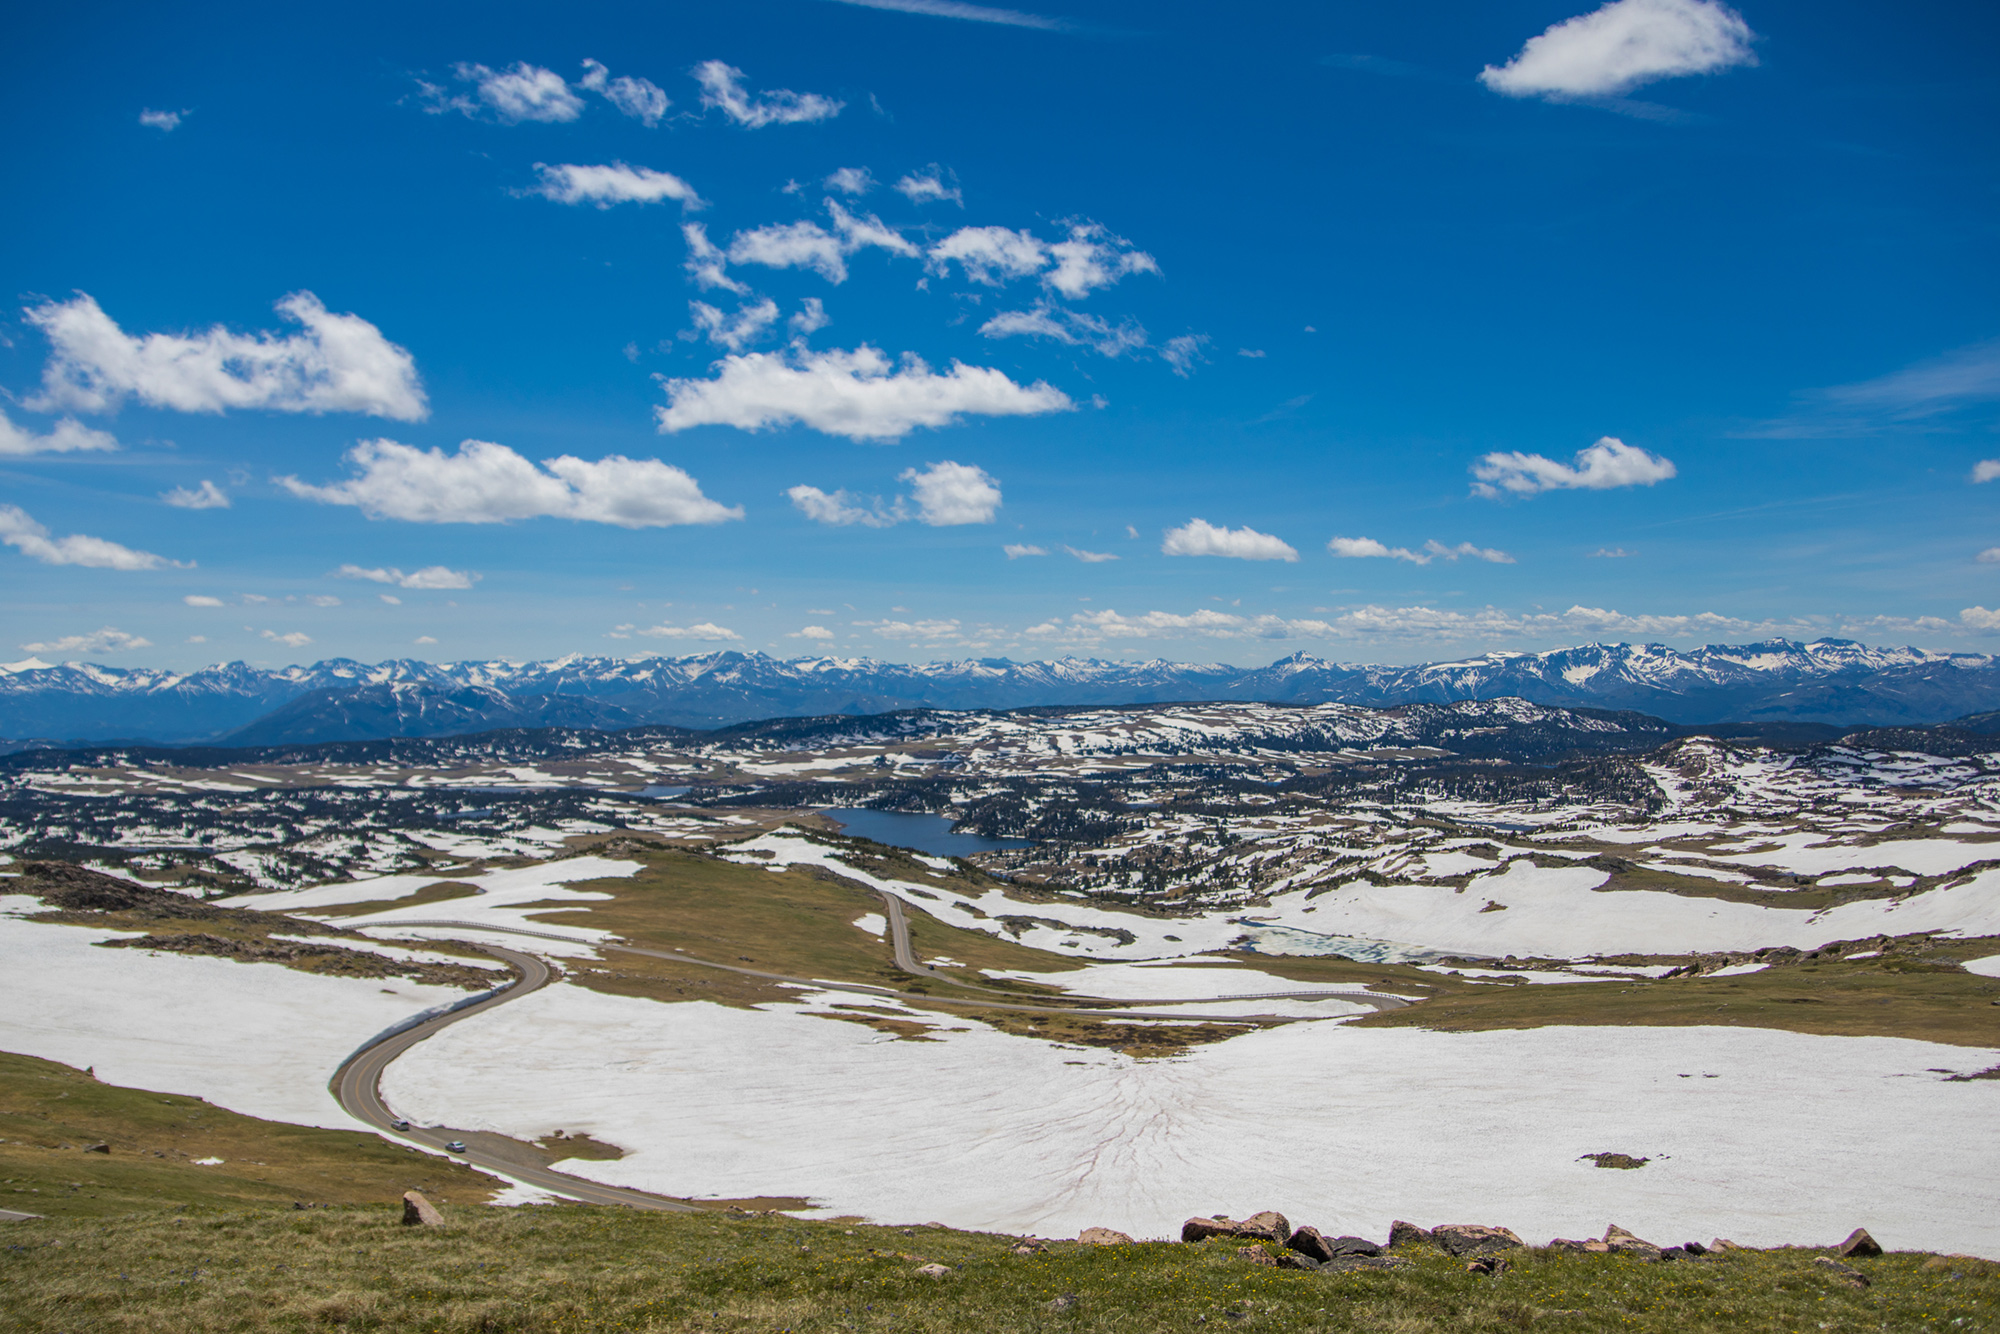 Snowy terrain on Beartooth Highway in Yellowstone Country Montana.